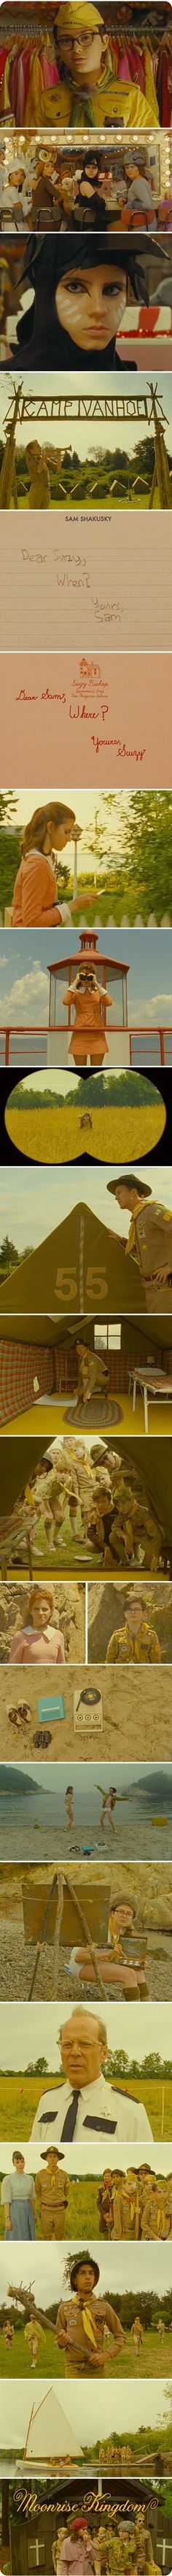 moonrise kingdom cannot wait to see this film, wes anderson, colors, art, camps, moonris kingdom, moonrise kingdom, birds, brooklyn